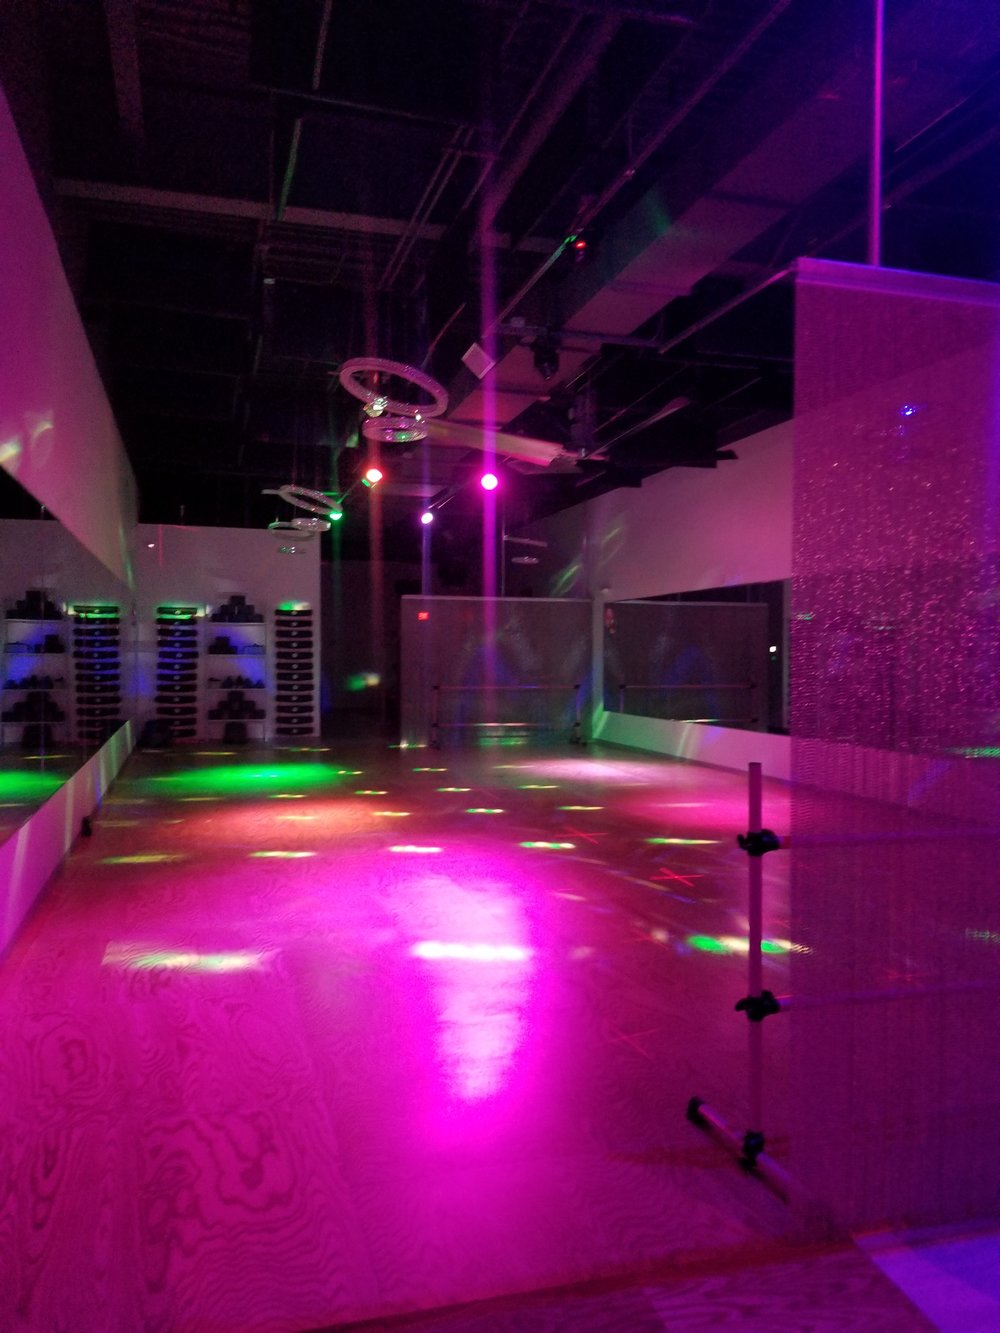 Dancefloor with lights!